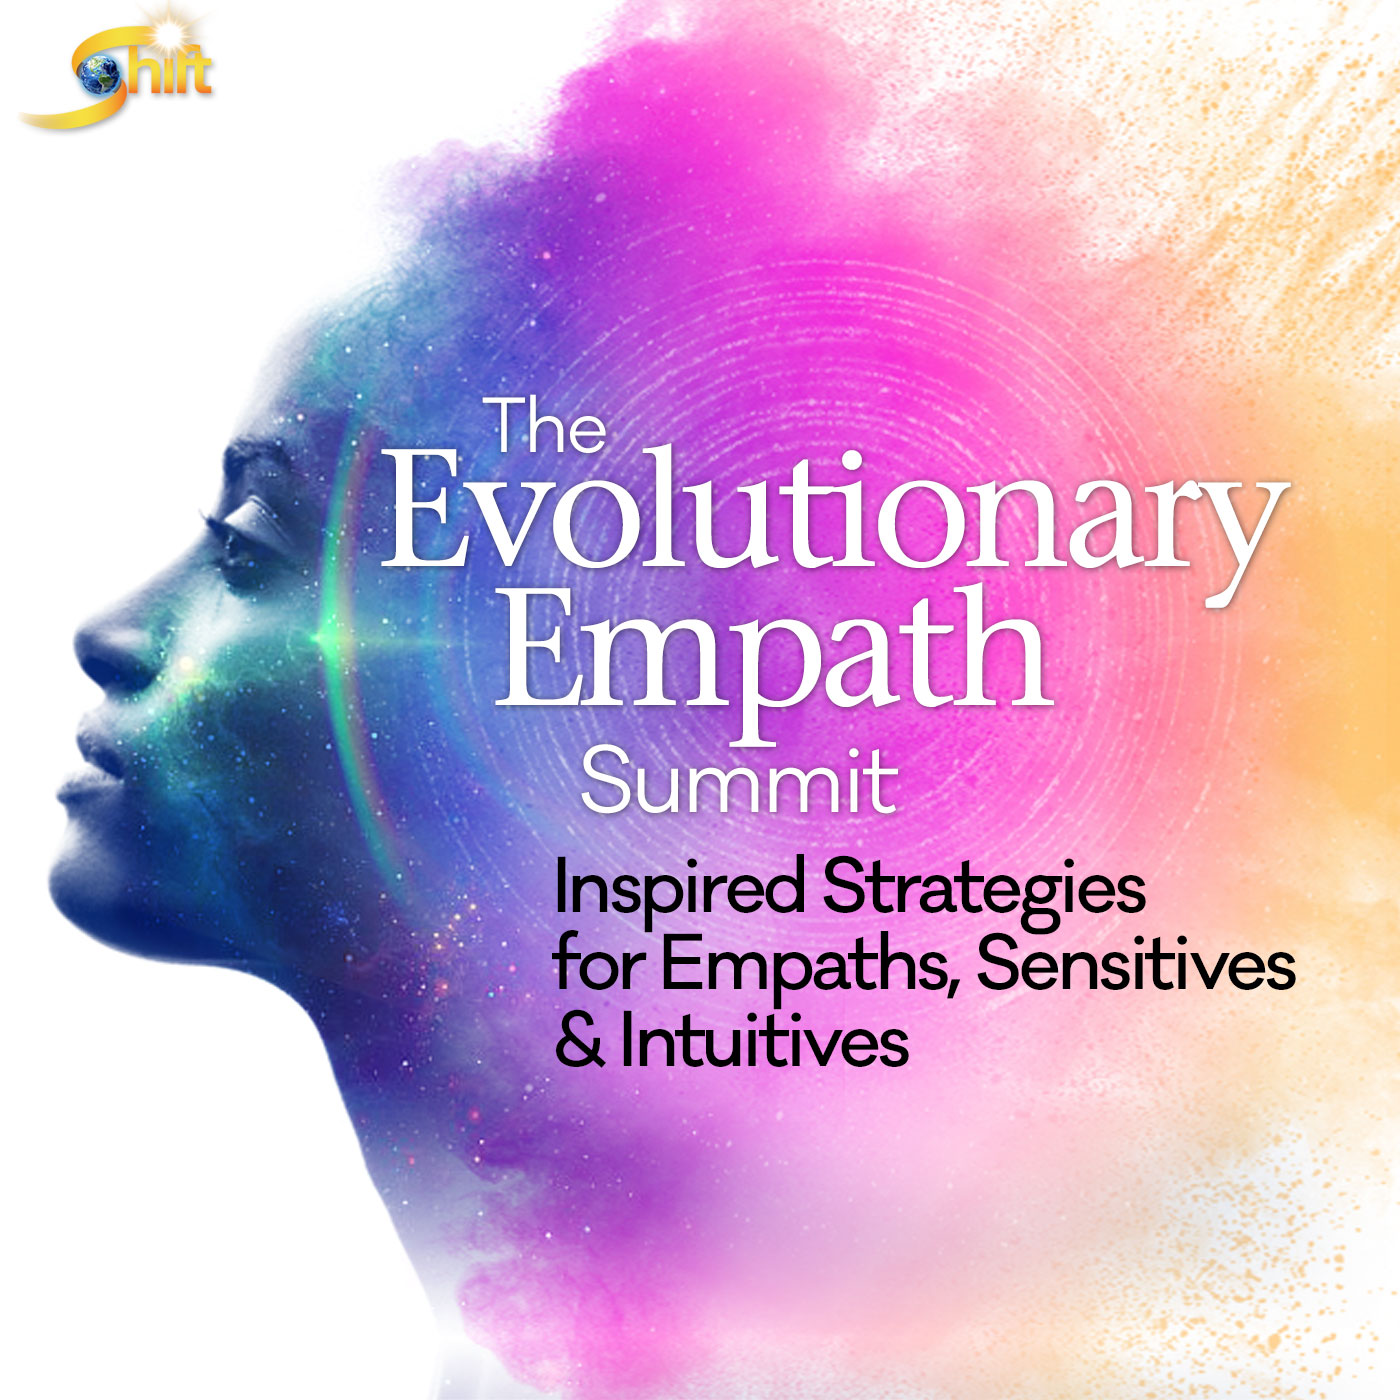 Discover Powerful Practices to Own Your Power as an HSP - Join me for this free summit and turn your sensitivity into your superpower! This will help you illuminate your path as you rise to your full potential and fulfill your highest mission and purpose. Discover how to embody your gifts as an HSP — with easy-to-pick-up-and-run-with strategies to enhance your internal guidance system. May 14-17 Register Here.